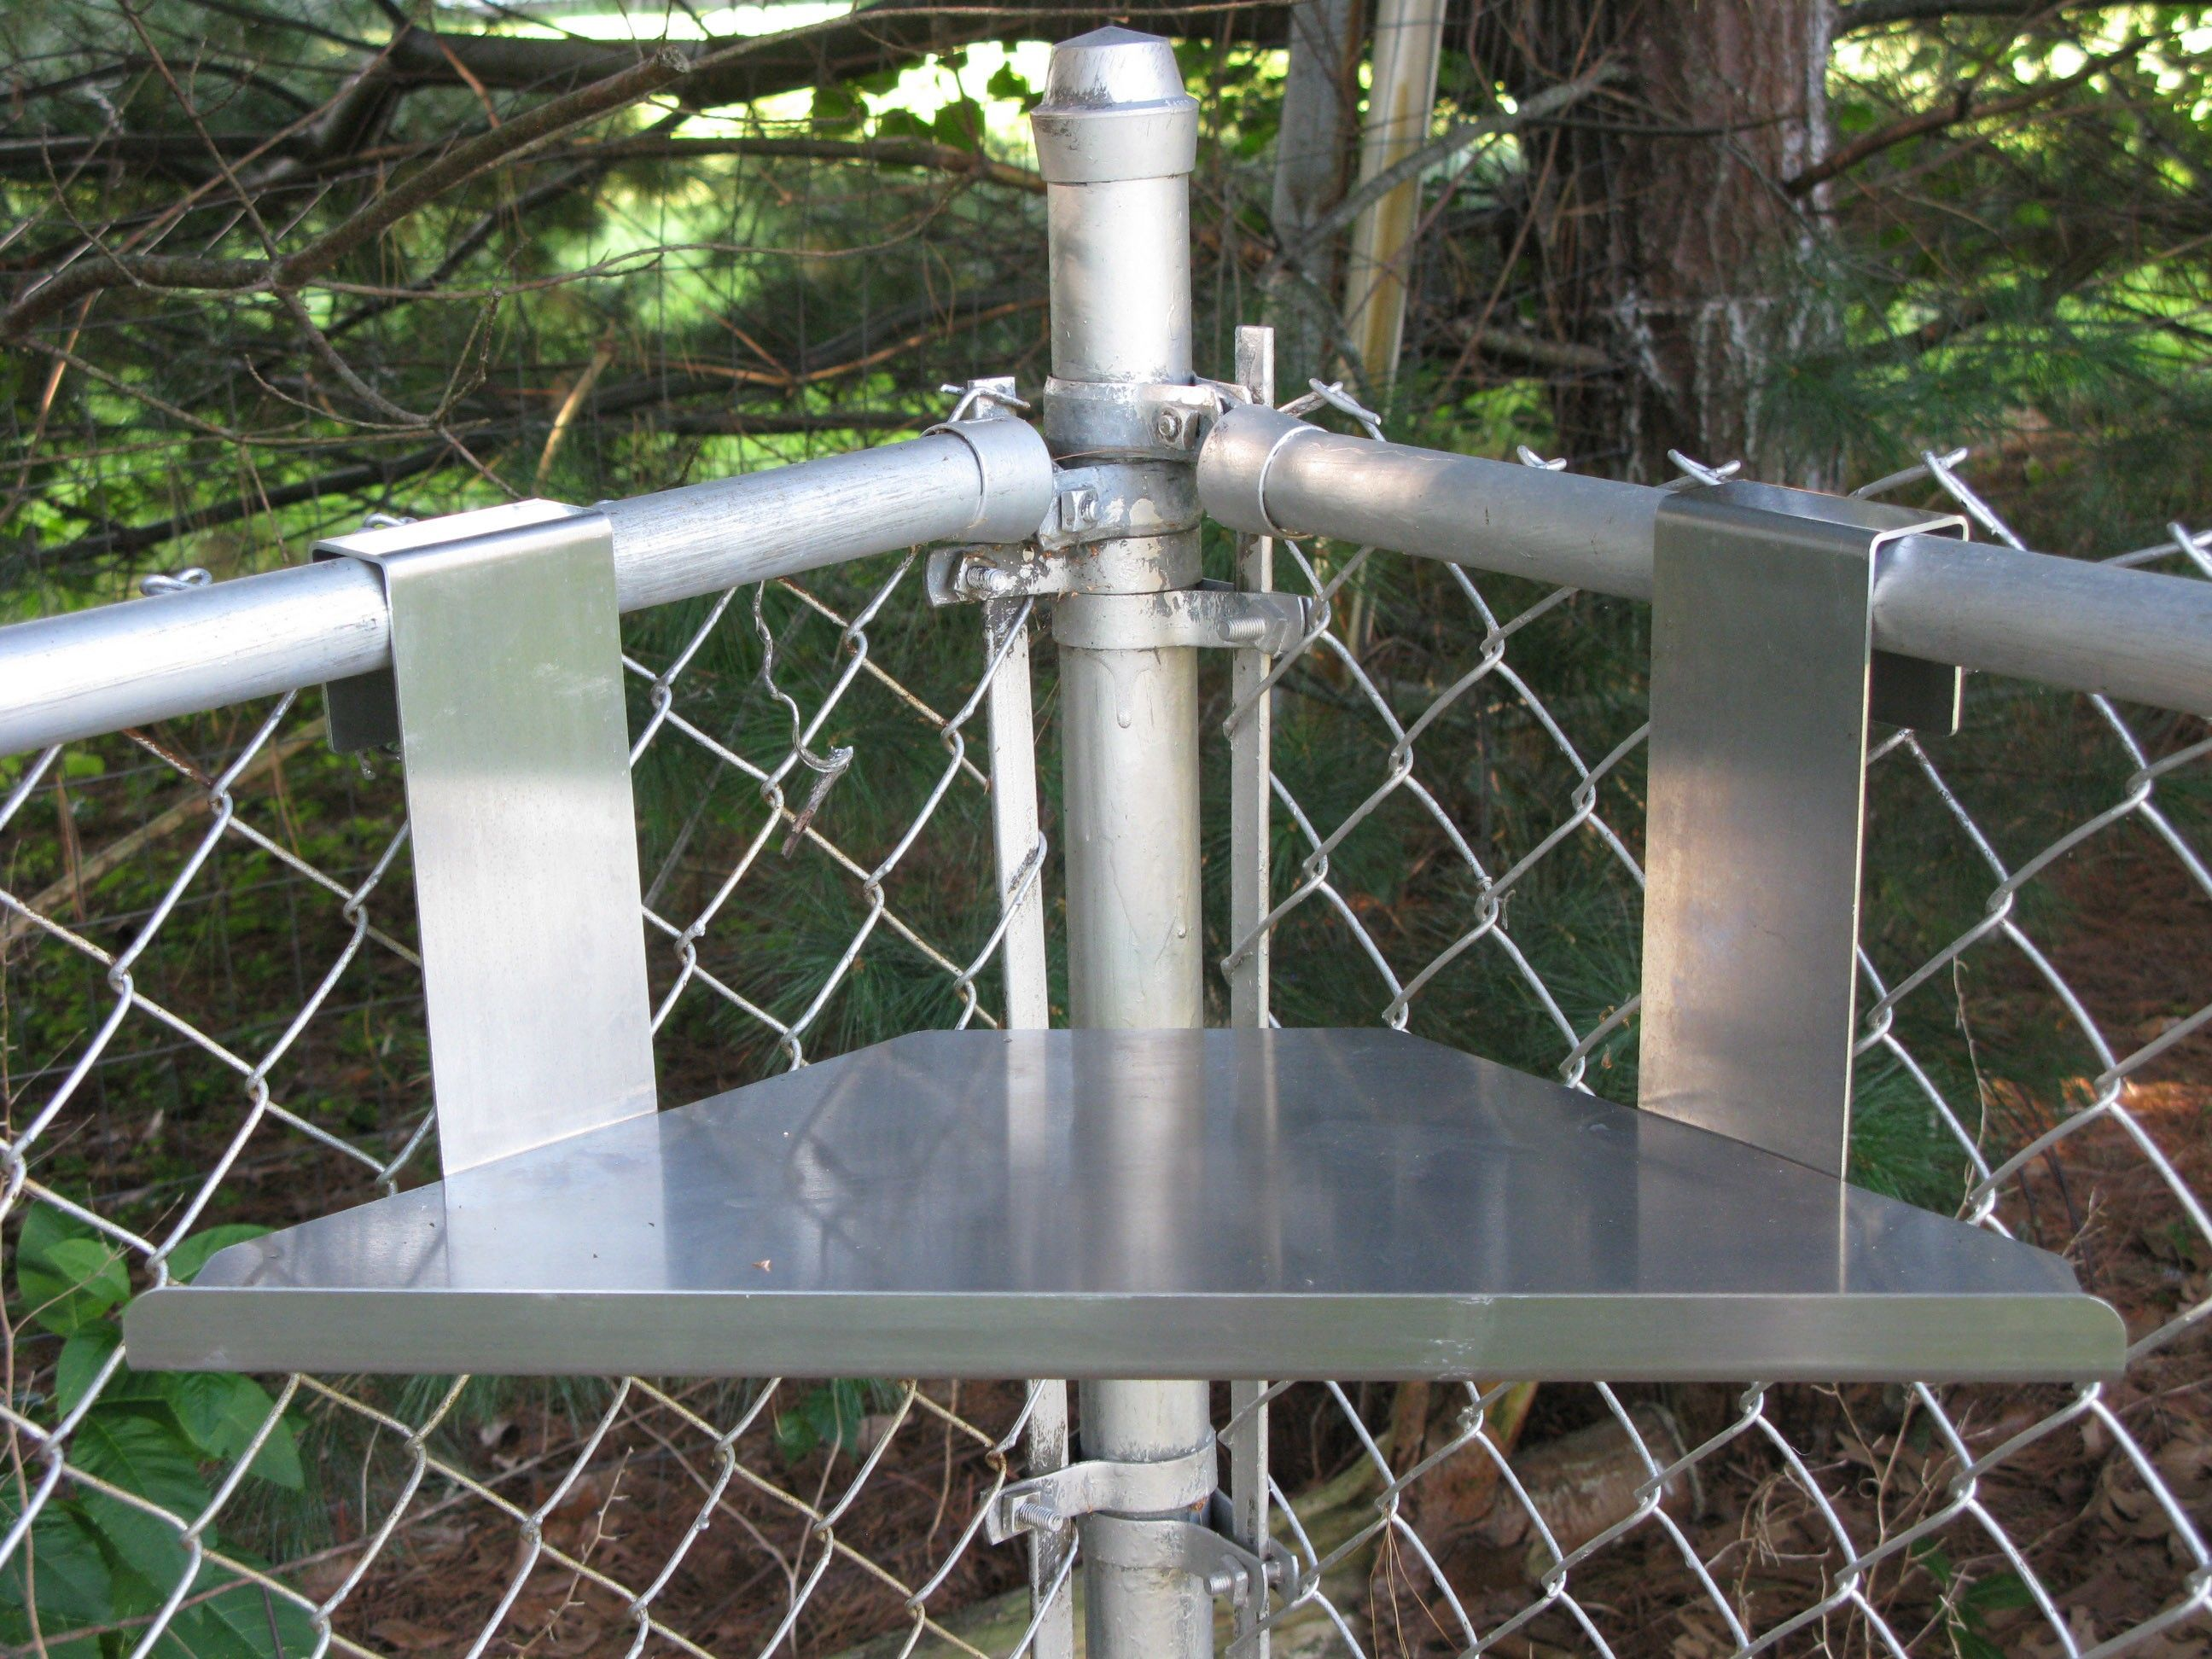 shelves in chain link fence - Google Search | Homeless Shelving Unit ...